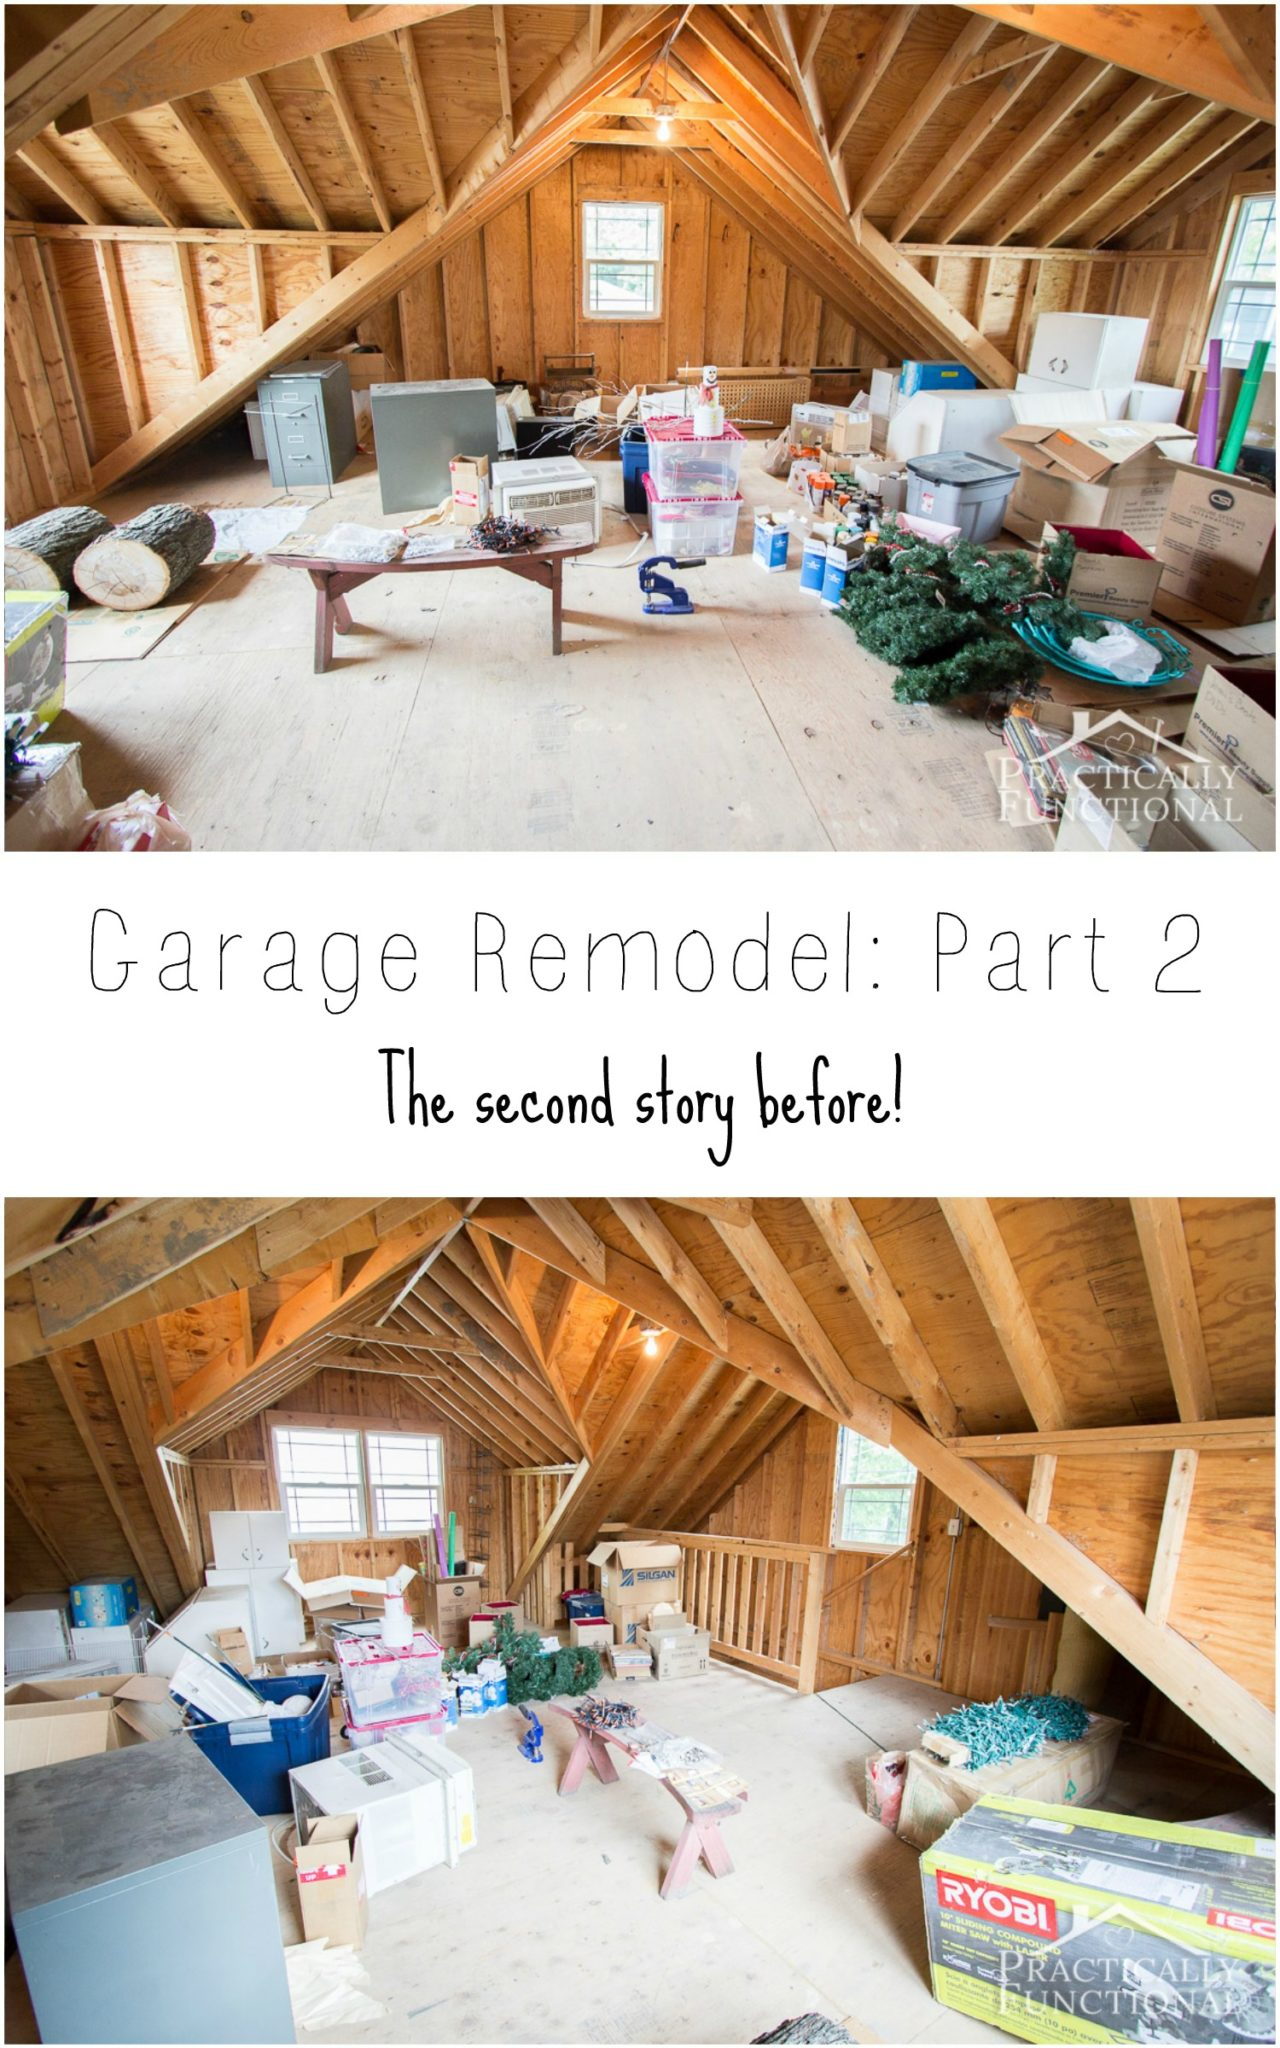 Garage Remodel Plans: The Second Story Before!